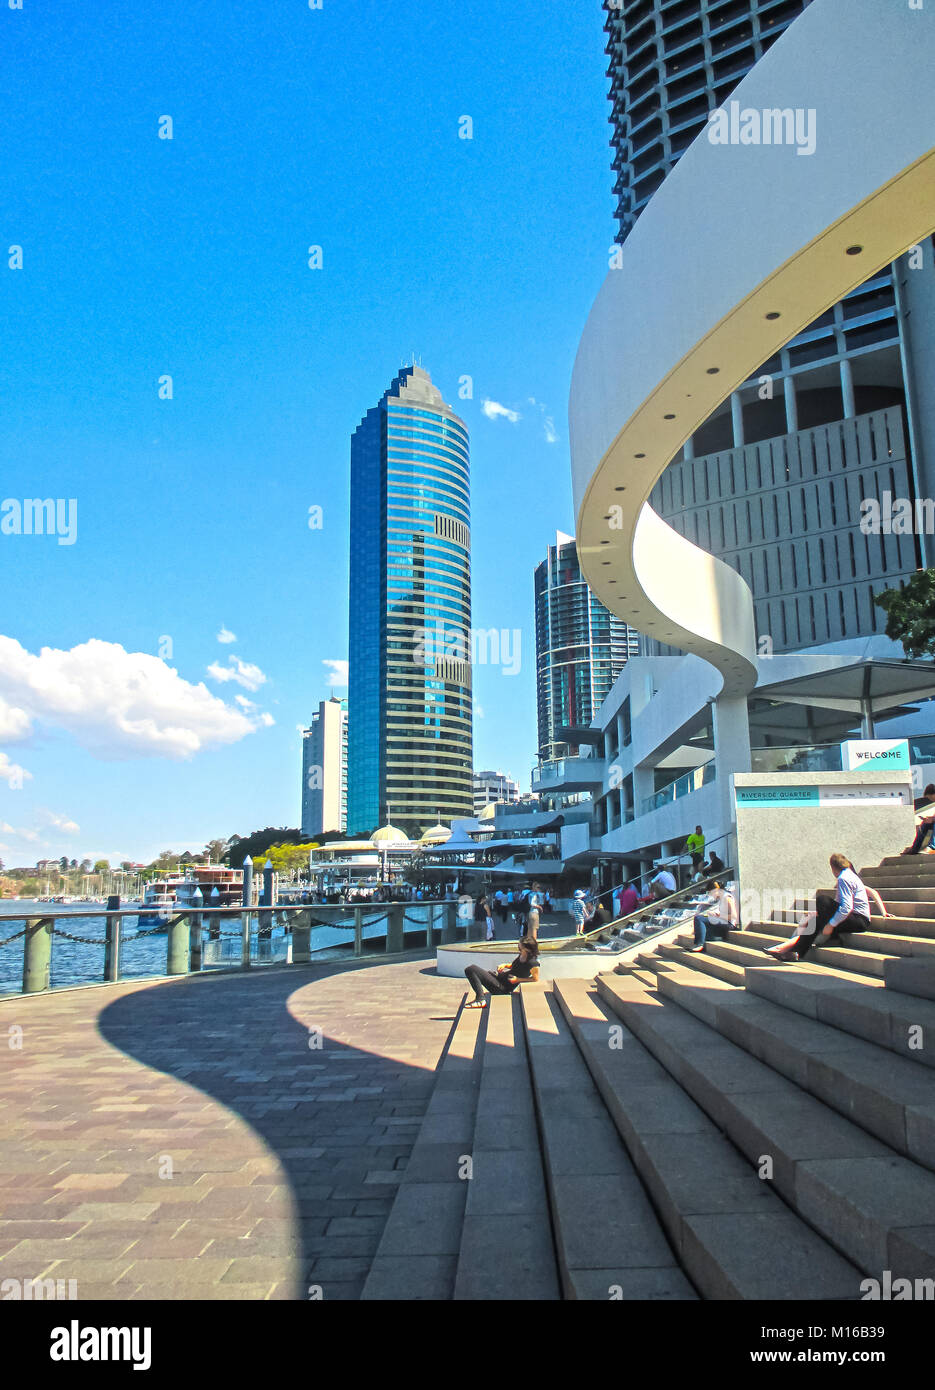 People sitting on the steps near the Eagle Street Pier with sky scrapers in the background in the CBD Brisbane Queensland - Stock Image